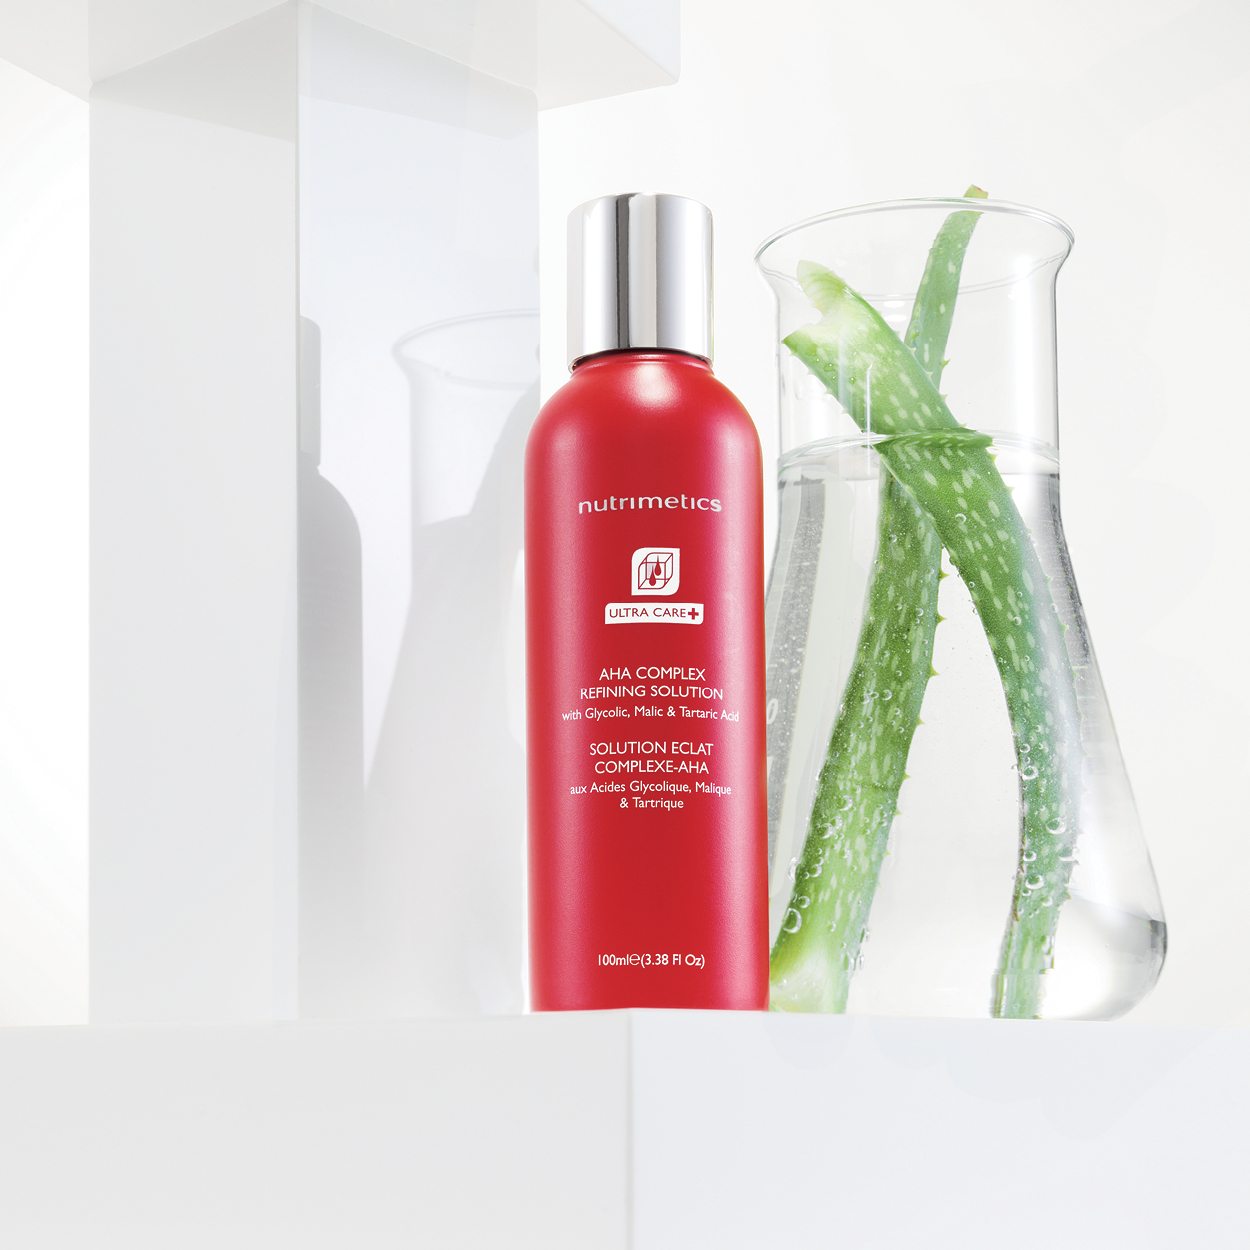 Ultra Care+ AHA Complex Refining Solution